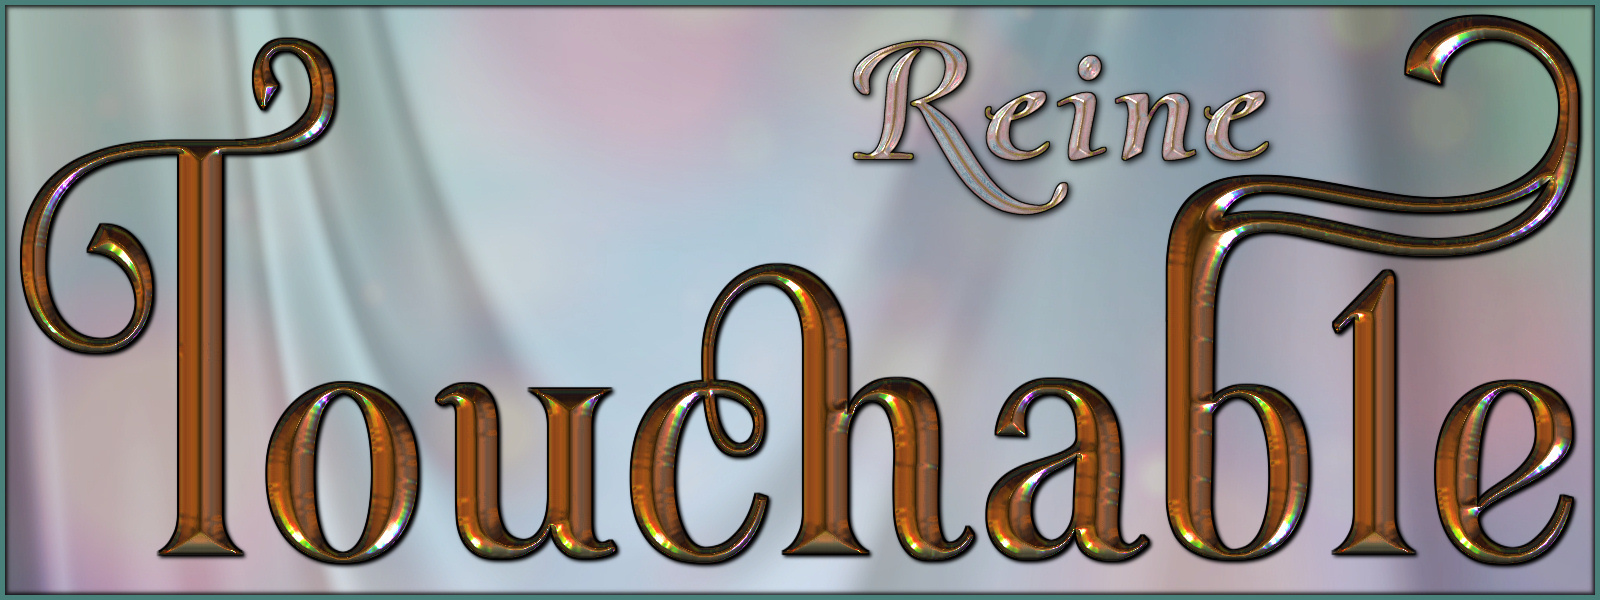 Touchable Reine by -Wolfie-